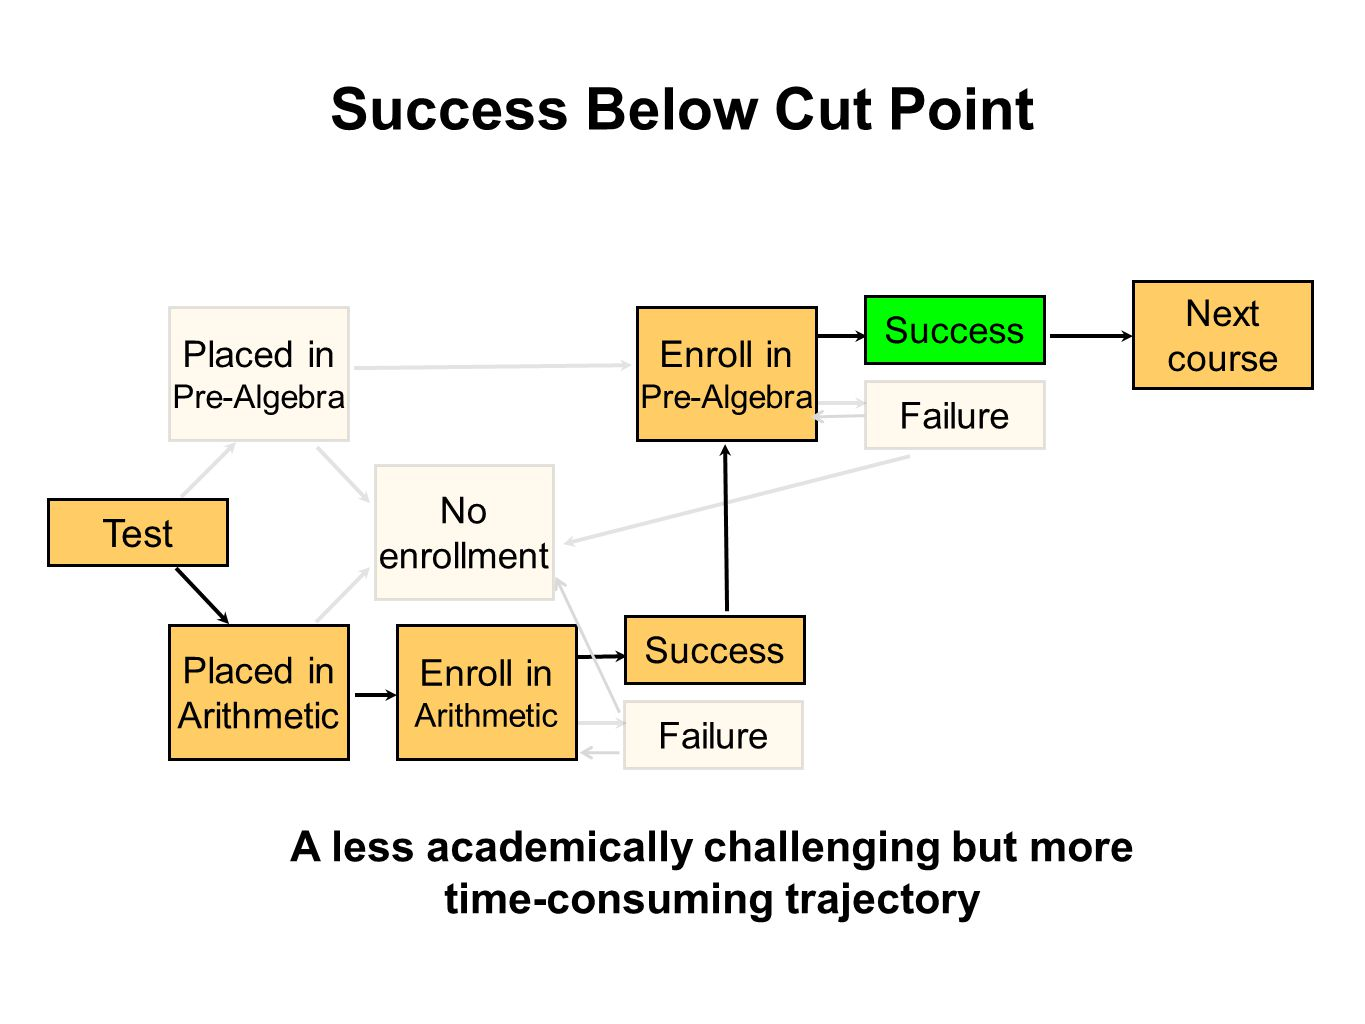 Success Below Cut Point Test Placed in Pre-Algebra Placed in Arithmetic Enroll in Pre-Algebra Enroll in Arithmetic No enrollment Success Failure Success Failure Next course A less academically challenging but more time-consuming trajectory